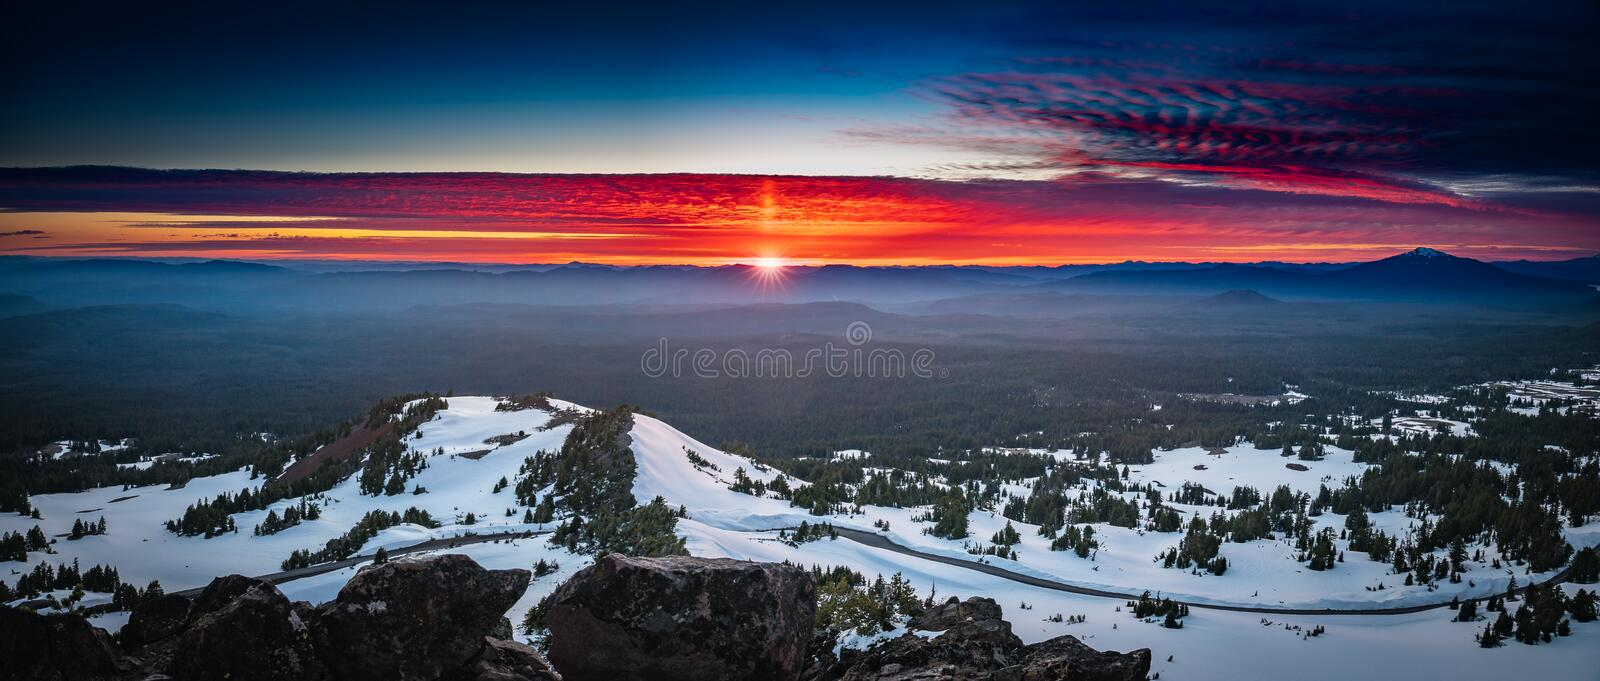 The epic sunset at Crater Lake. This is a sunset view from a peak of Crater Lake National Park, Oregon, USA stock photos